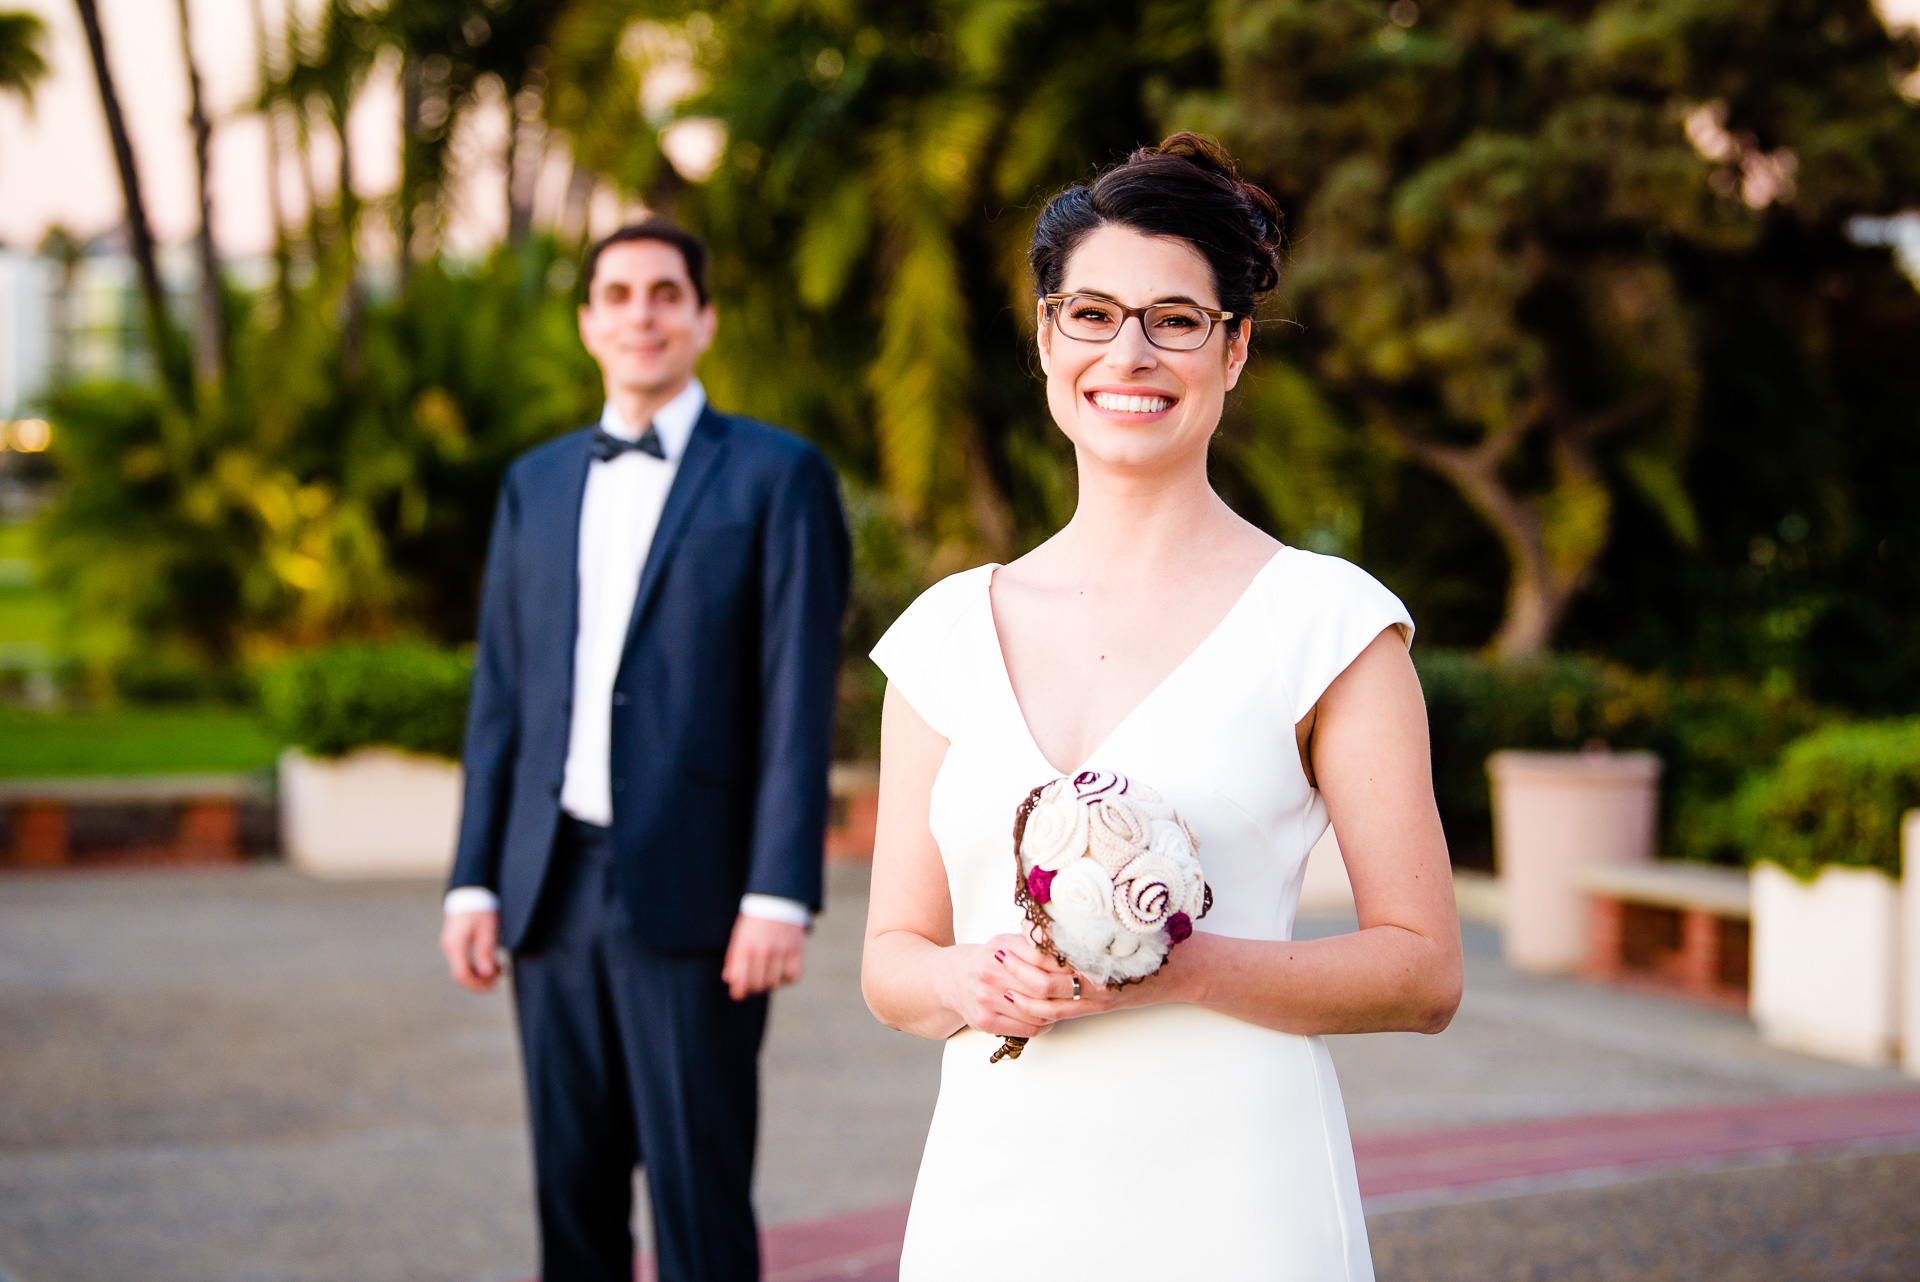 12.29.17 - Michelle and Tommaso Wedding - San Diego Courthouse -  Paul Douda Photography - 243.jpg